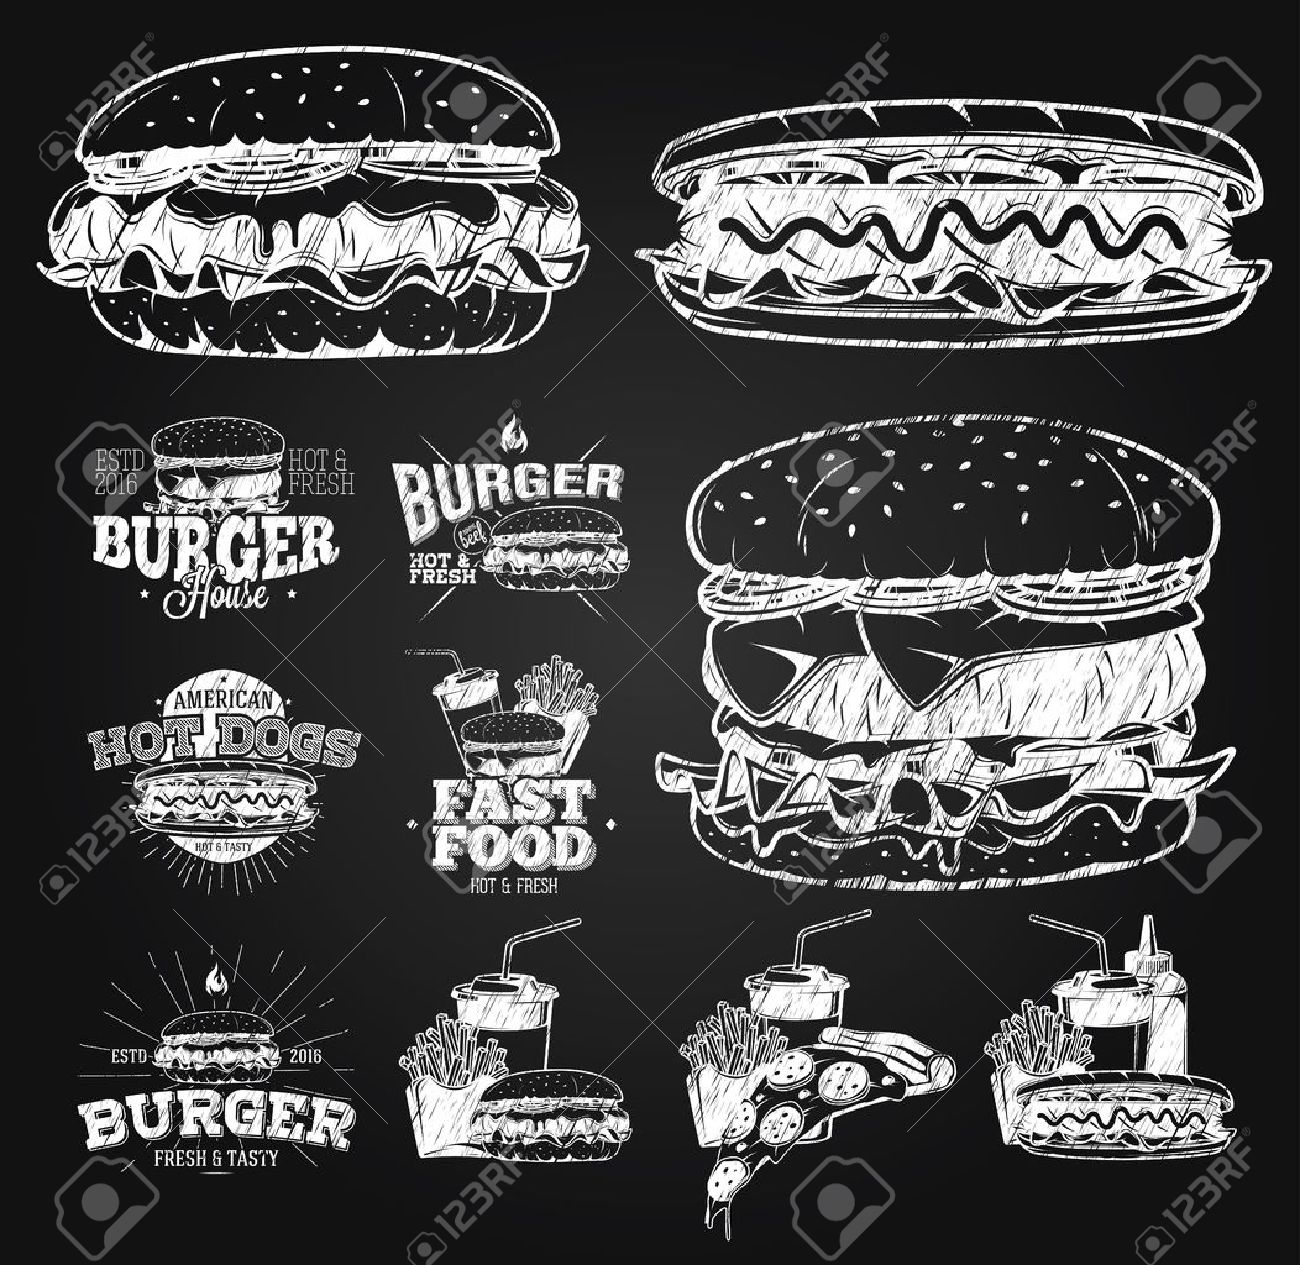 Fast Food Label, Logos and design elements chalk drawing - 70082141